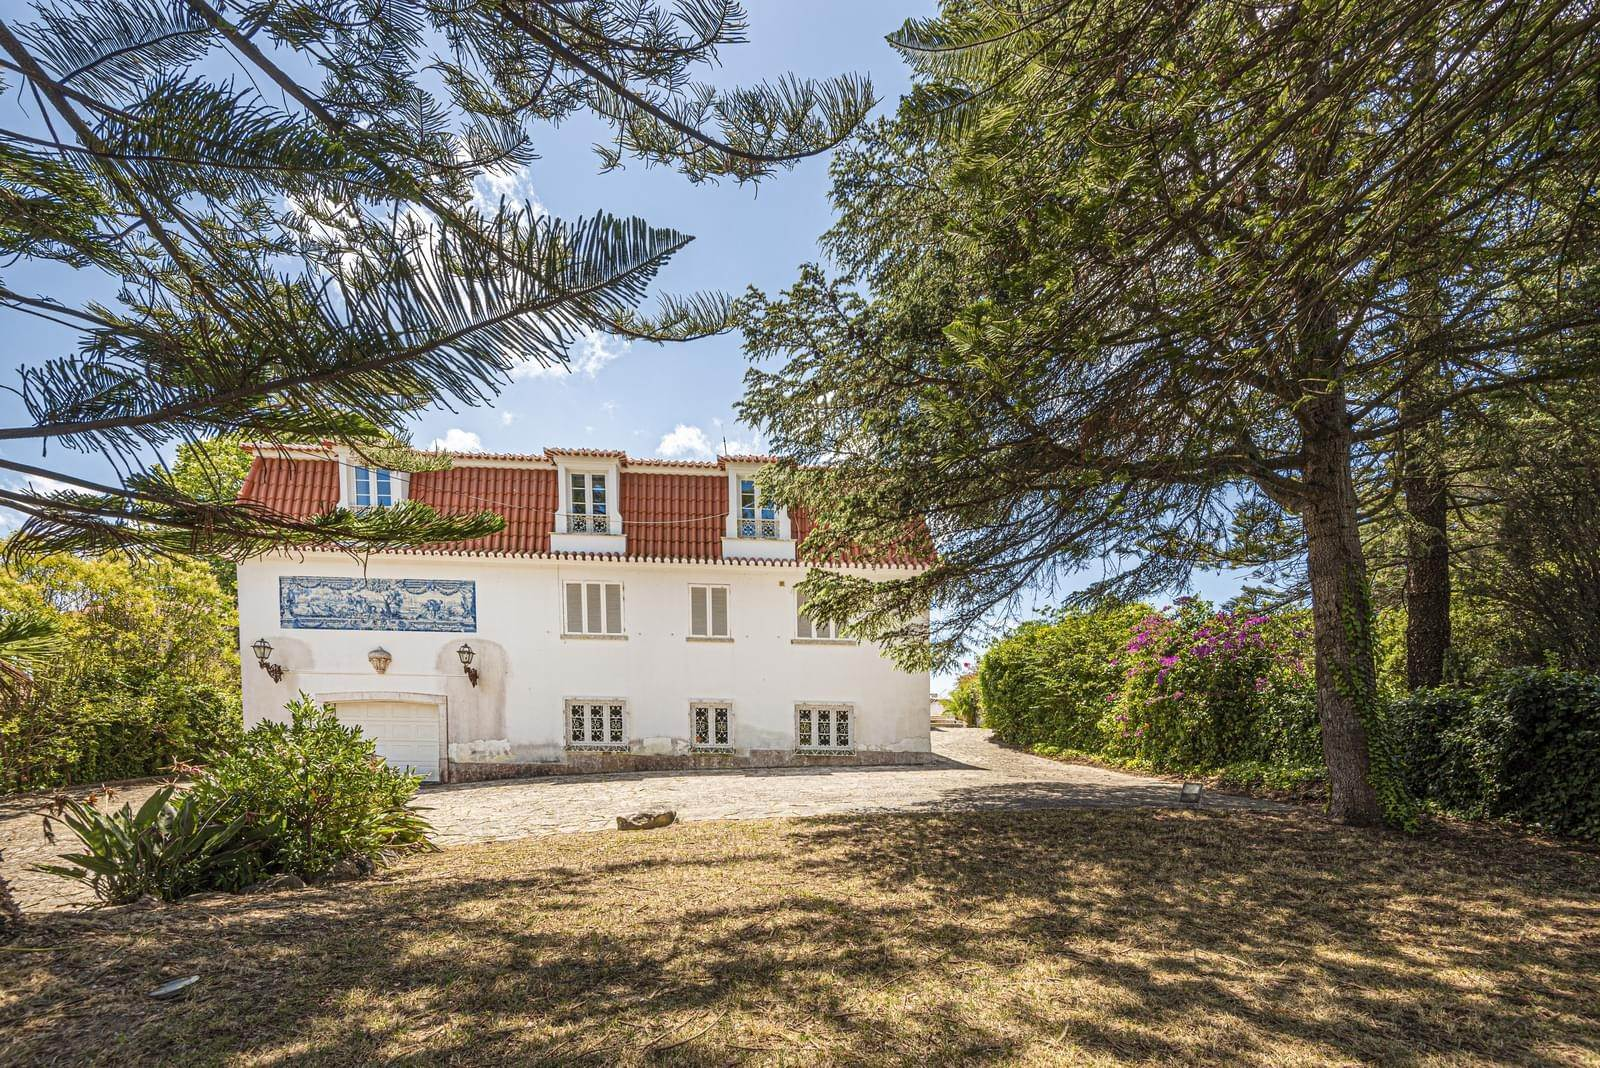 Villa/Townhouse for Sale at 9 bedroom villa, located in a quiet area in Cascais, only 8 minutes away, on foot, to the centre of Cascais.The villa is... Cascais, Portugal